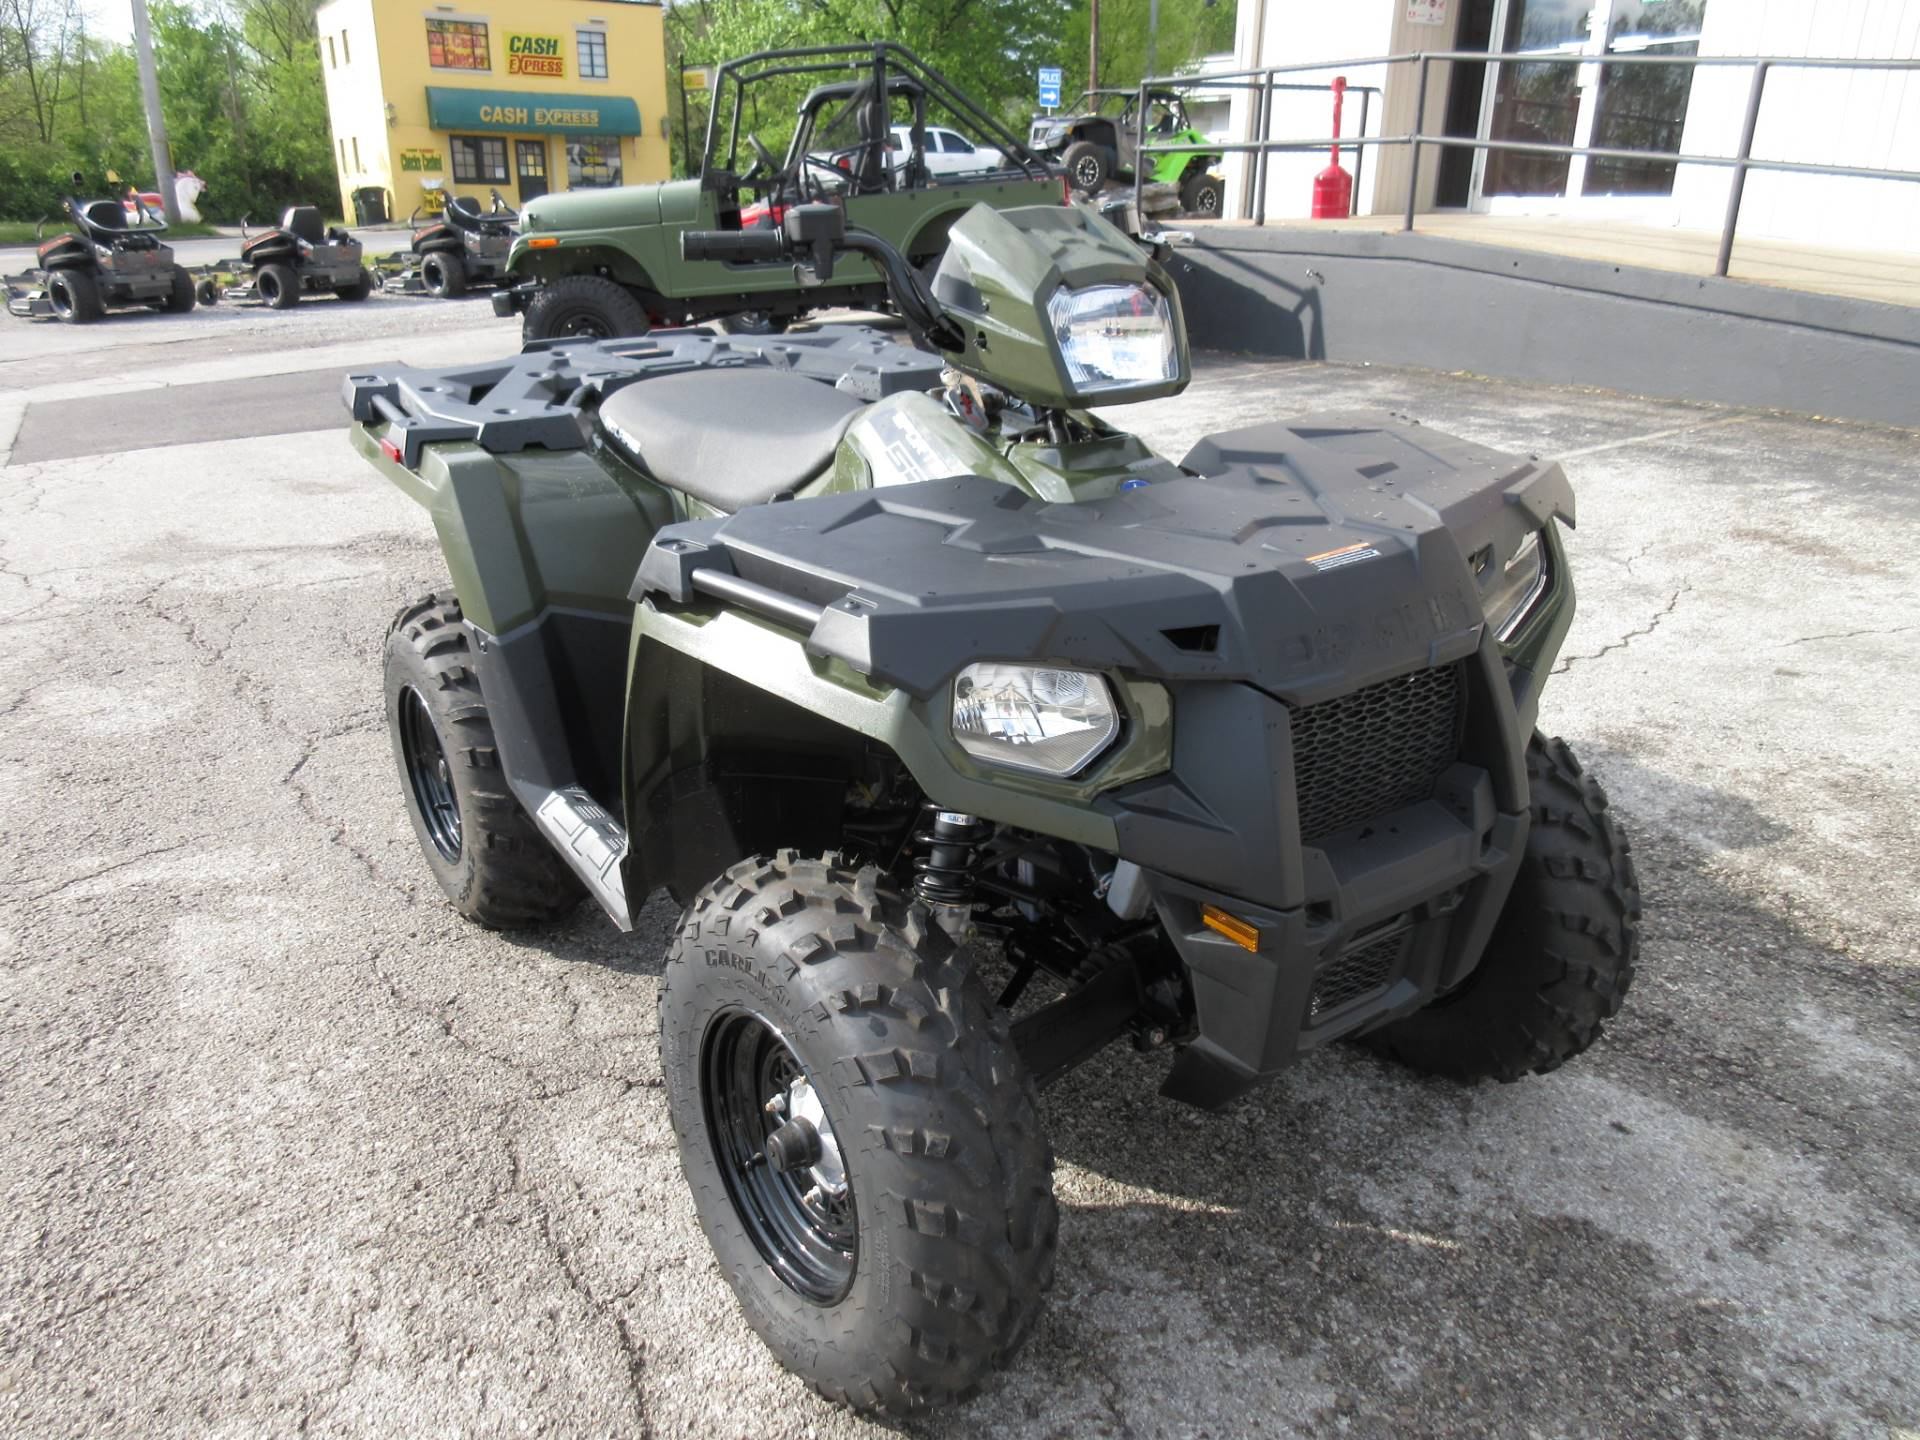 2019 Polaris Sportsman 570 in Georgetown, Kentucky - Photo 8